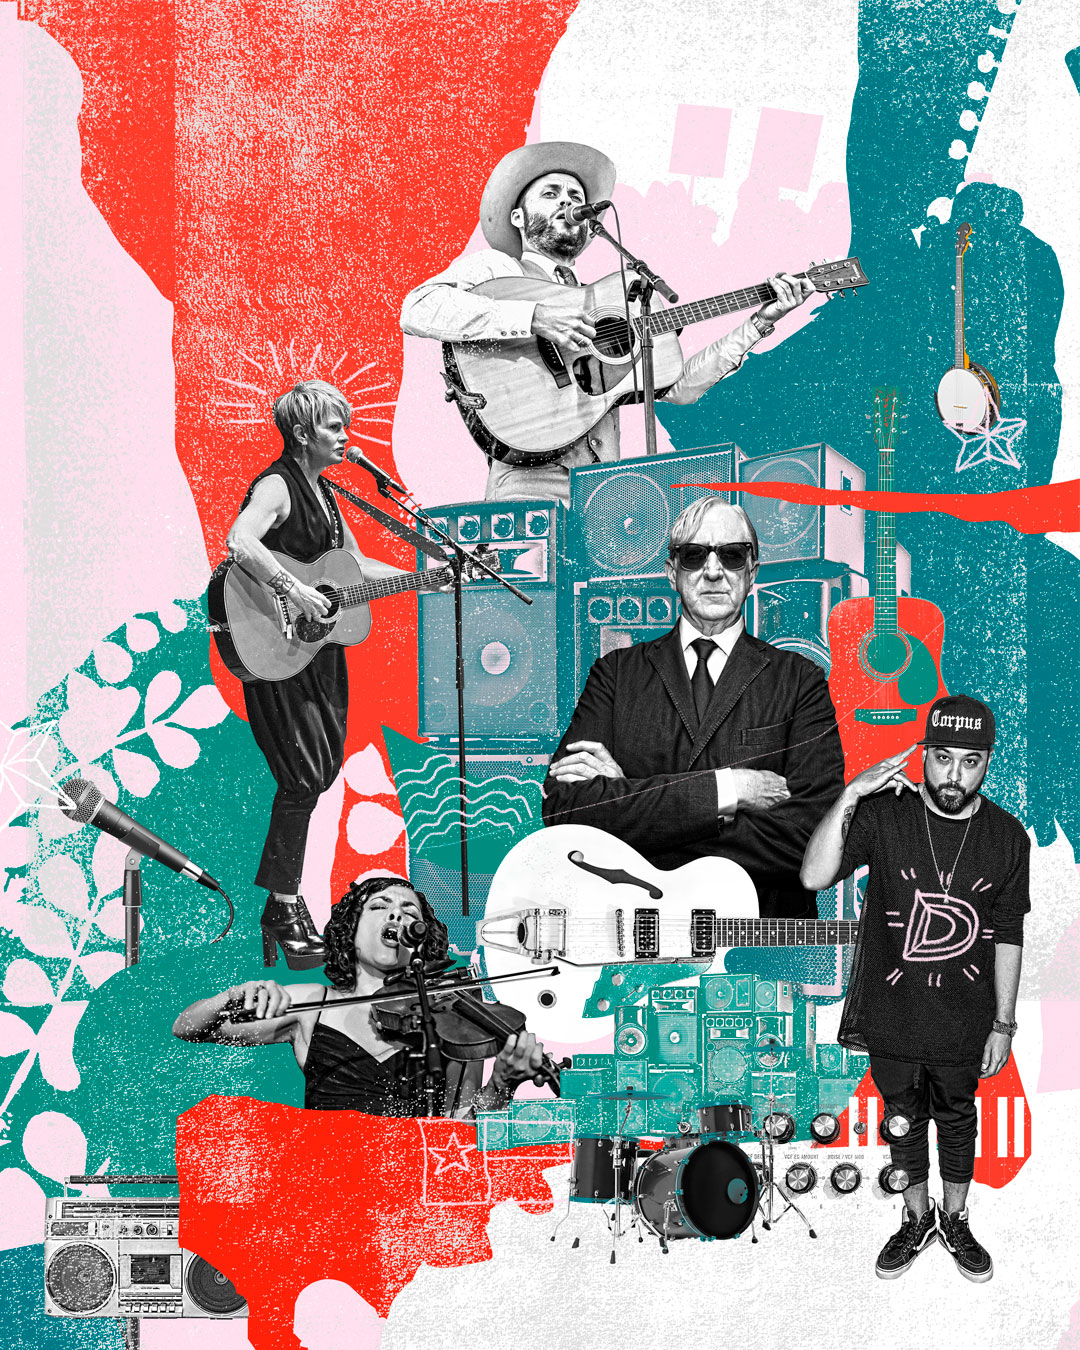 Max-o-matic: Texas Monthly: Behind Texas music